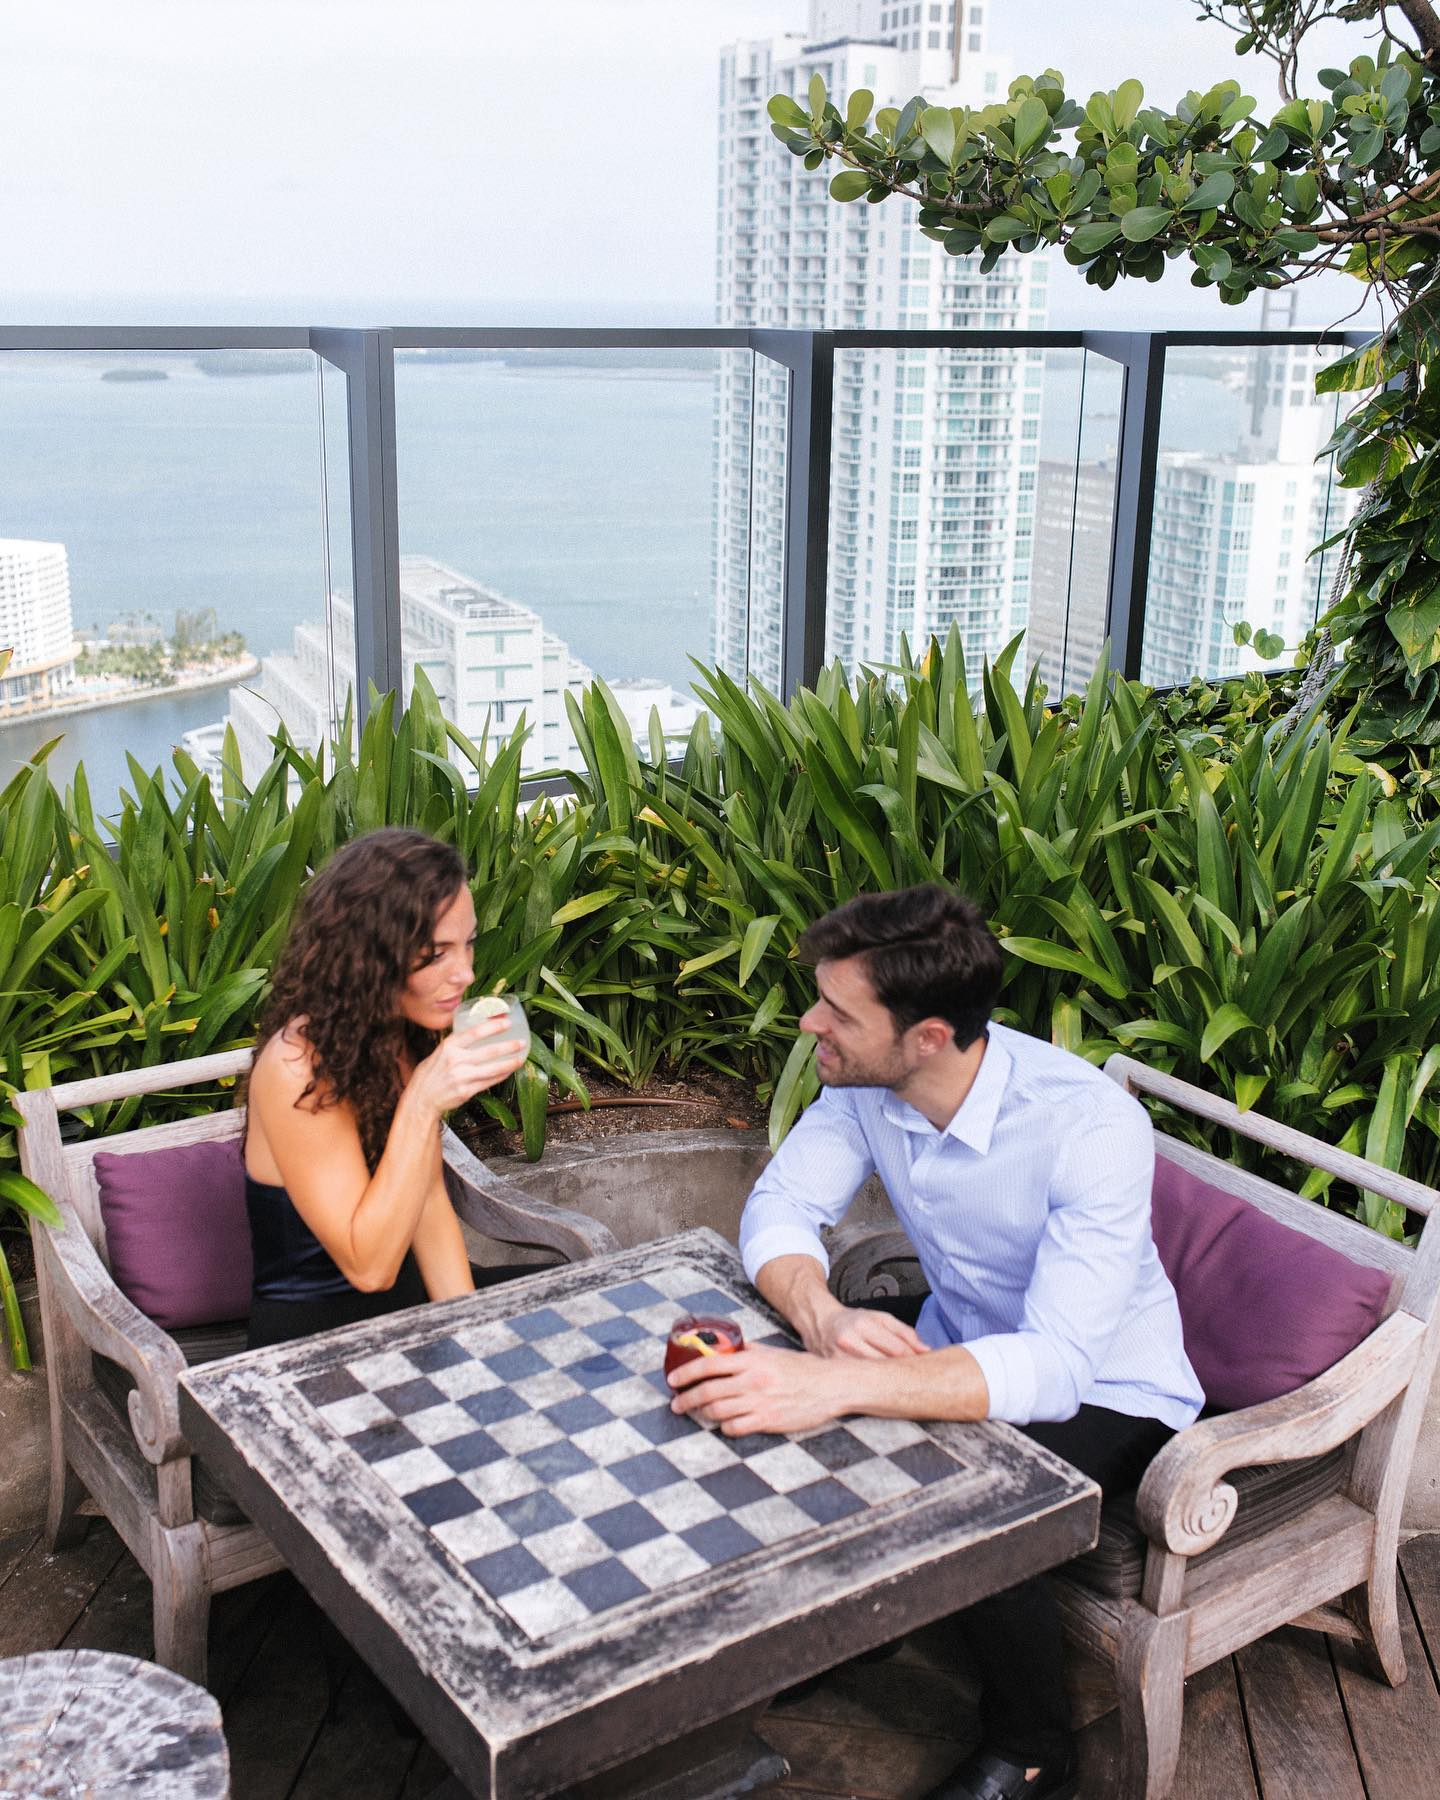 Unbeatable views, great cocktails and delicious bites. #SugarMiami. . . . #EASTMiami #EASThotels #BrickellMiami #travel #getaway #vacation #ilovetravel #jetsetter #holiday #miamihotels #travelpics #passportready #miamilife #luxurytravel #letswander #globetrotter #travelgram #luxuryworldtraveler #beautifuldestinations #letsgosomewhere #brickelllife #Miami #brickell #brickellliving #SwireHotels